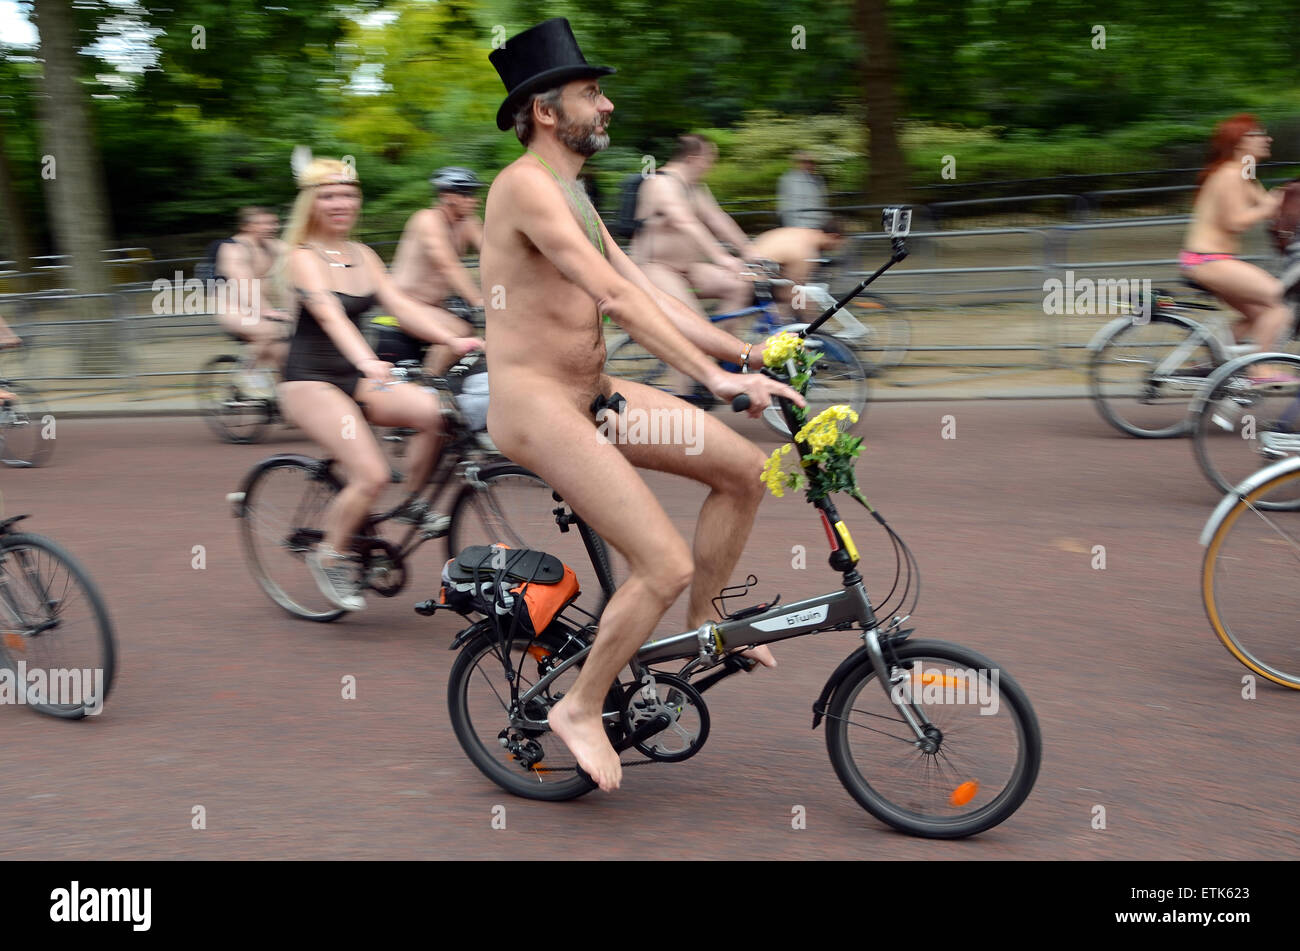 the-world-naked-bike-ride-in-london-gives-people-the-chance-to-prove-ETK623.jpg